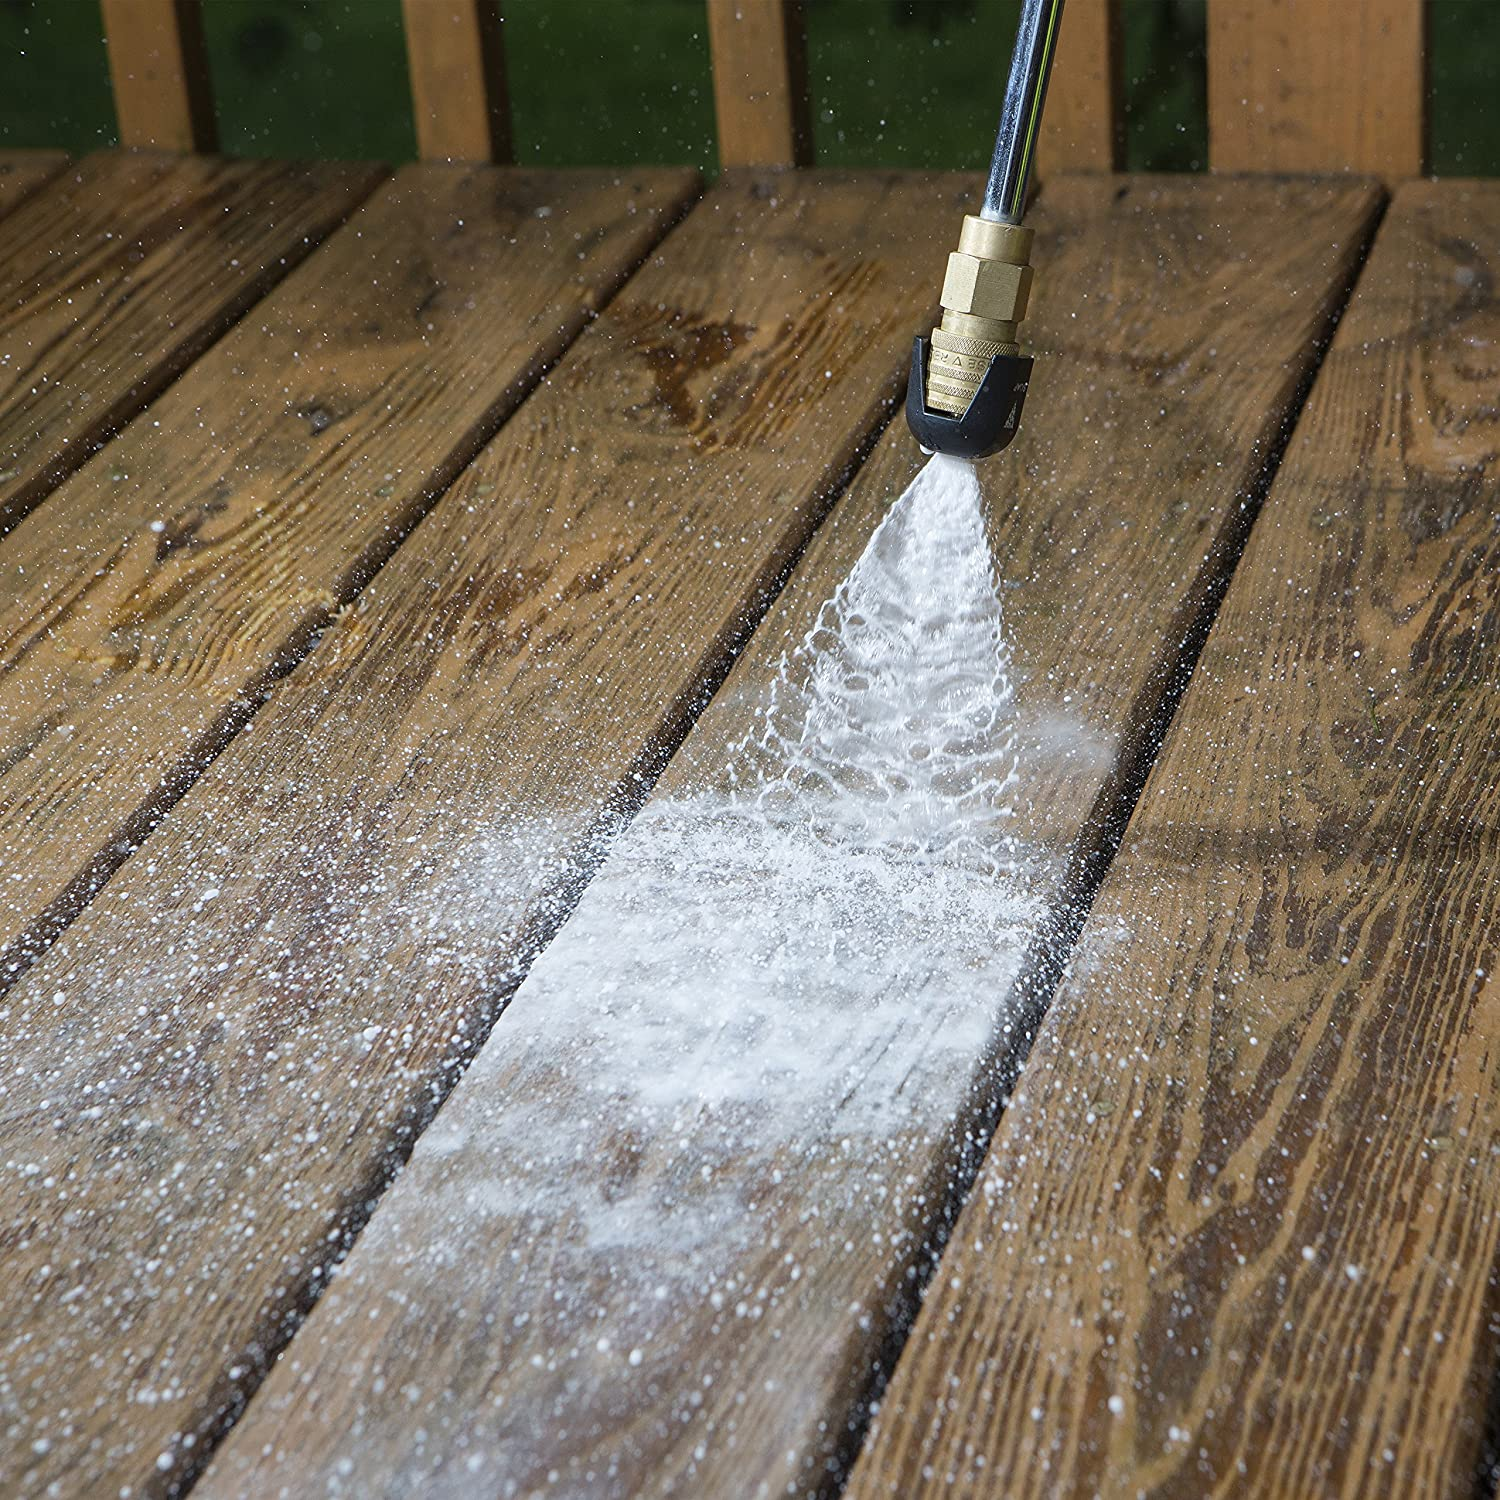 power washer being used on wood